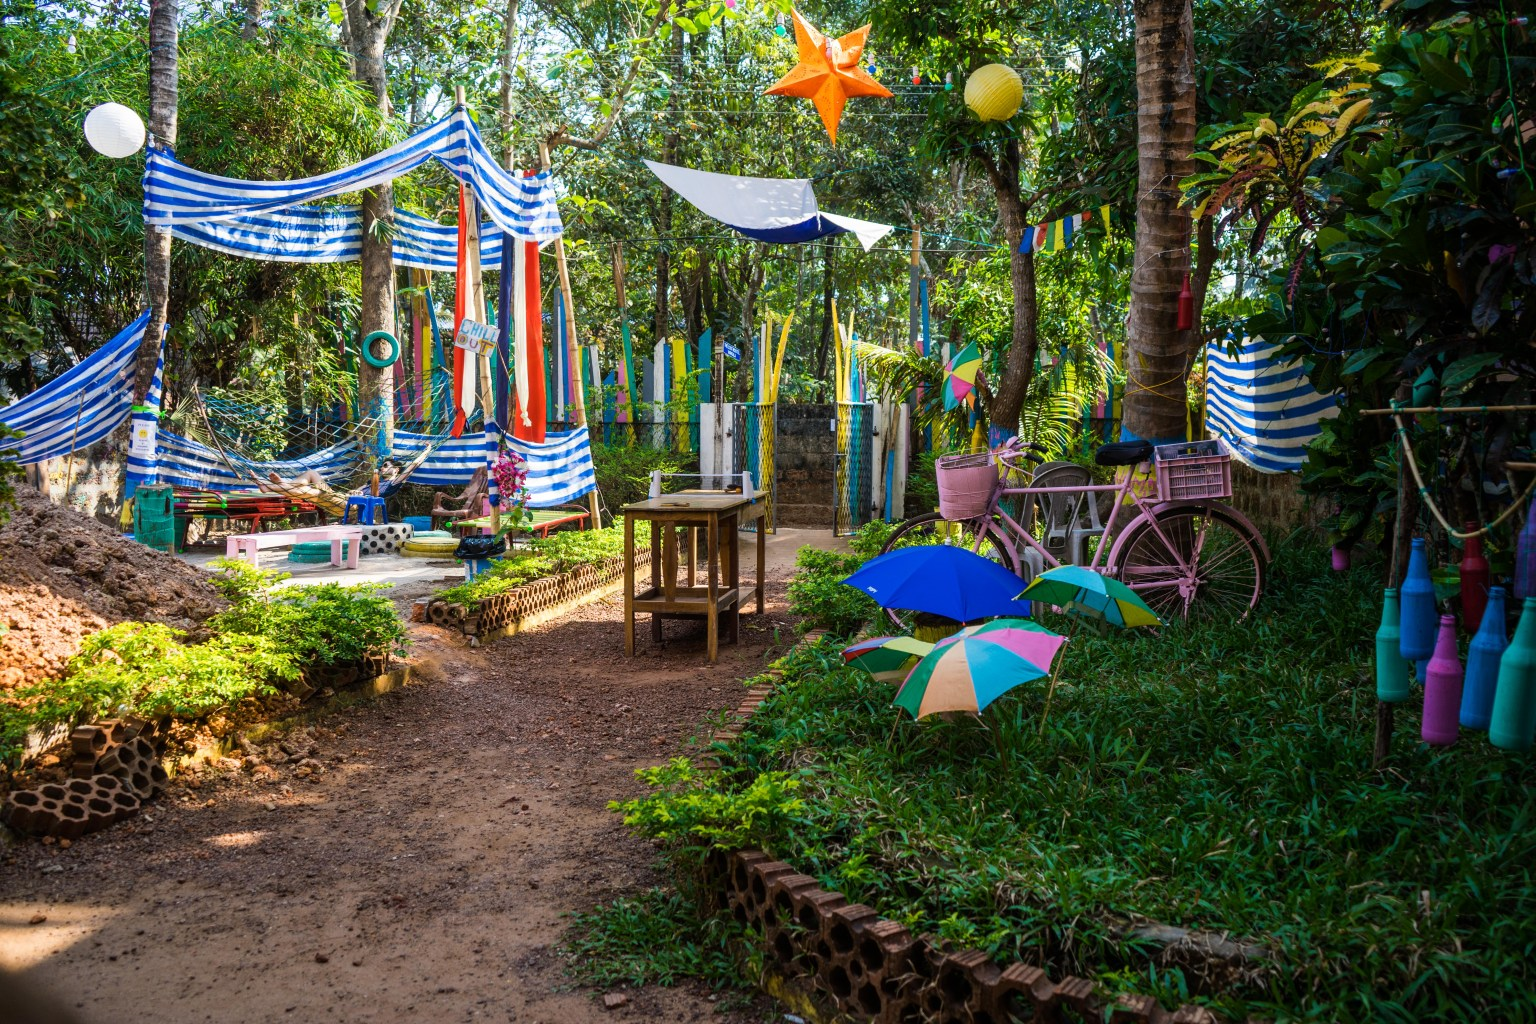 The laid back garden of the Lost Hostel in Varkala